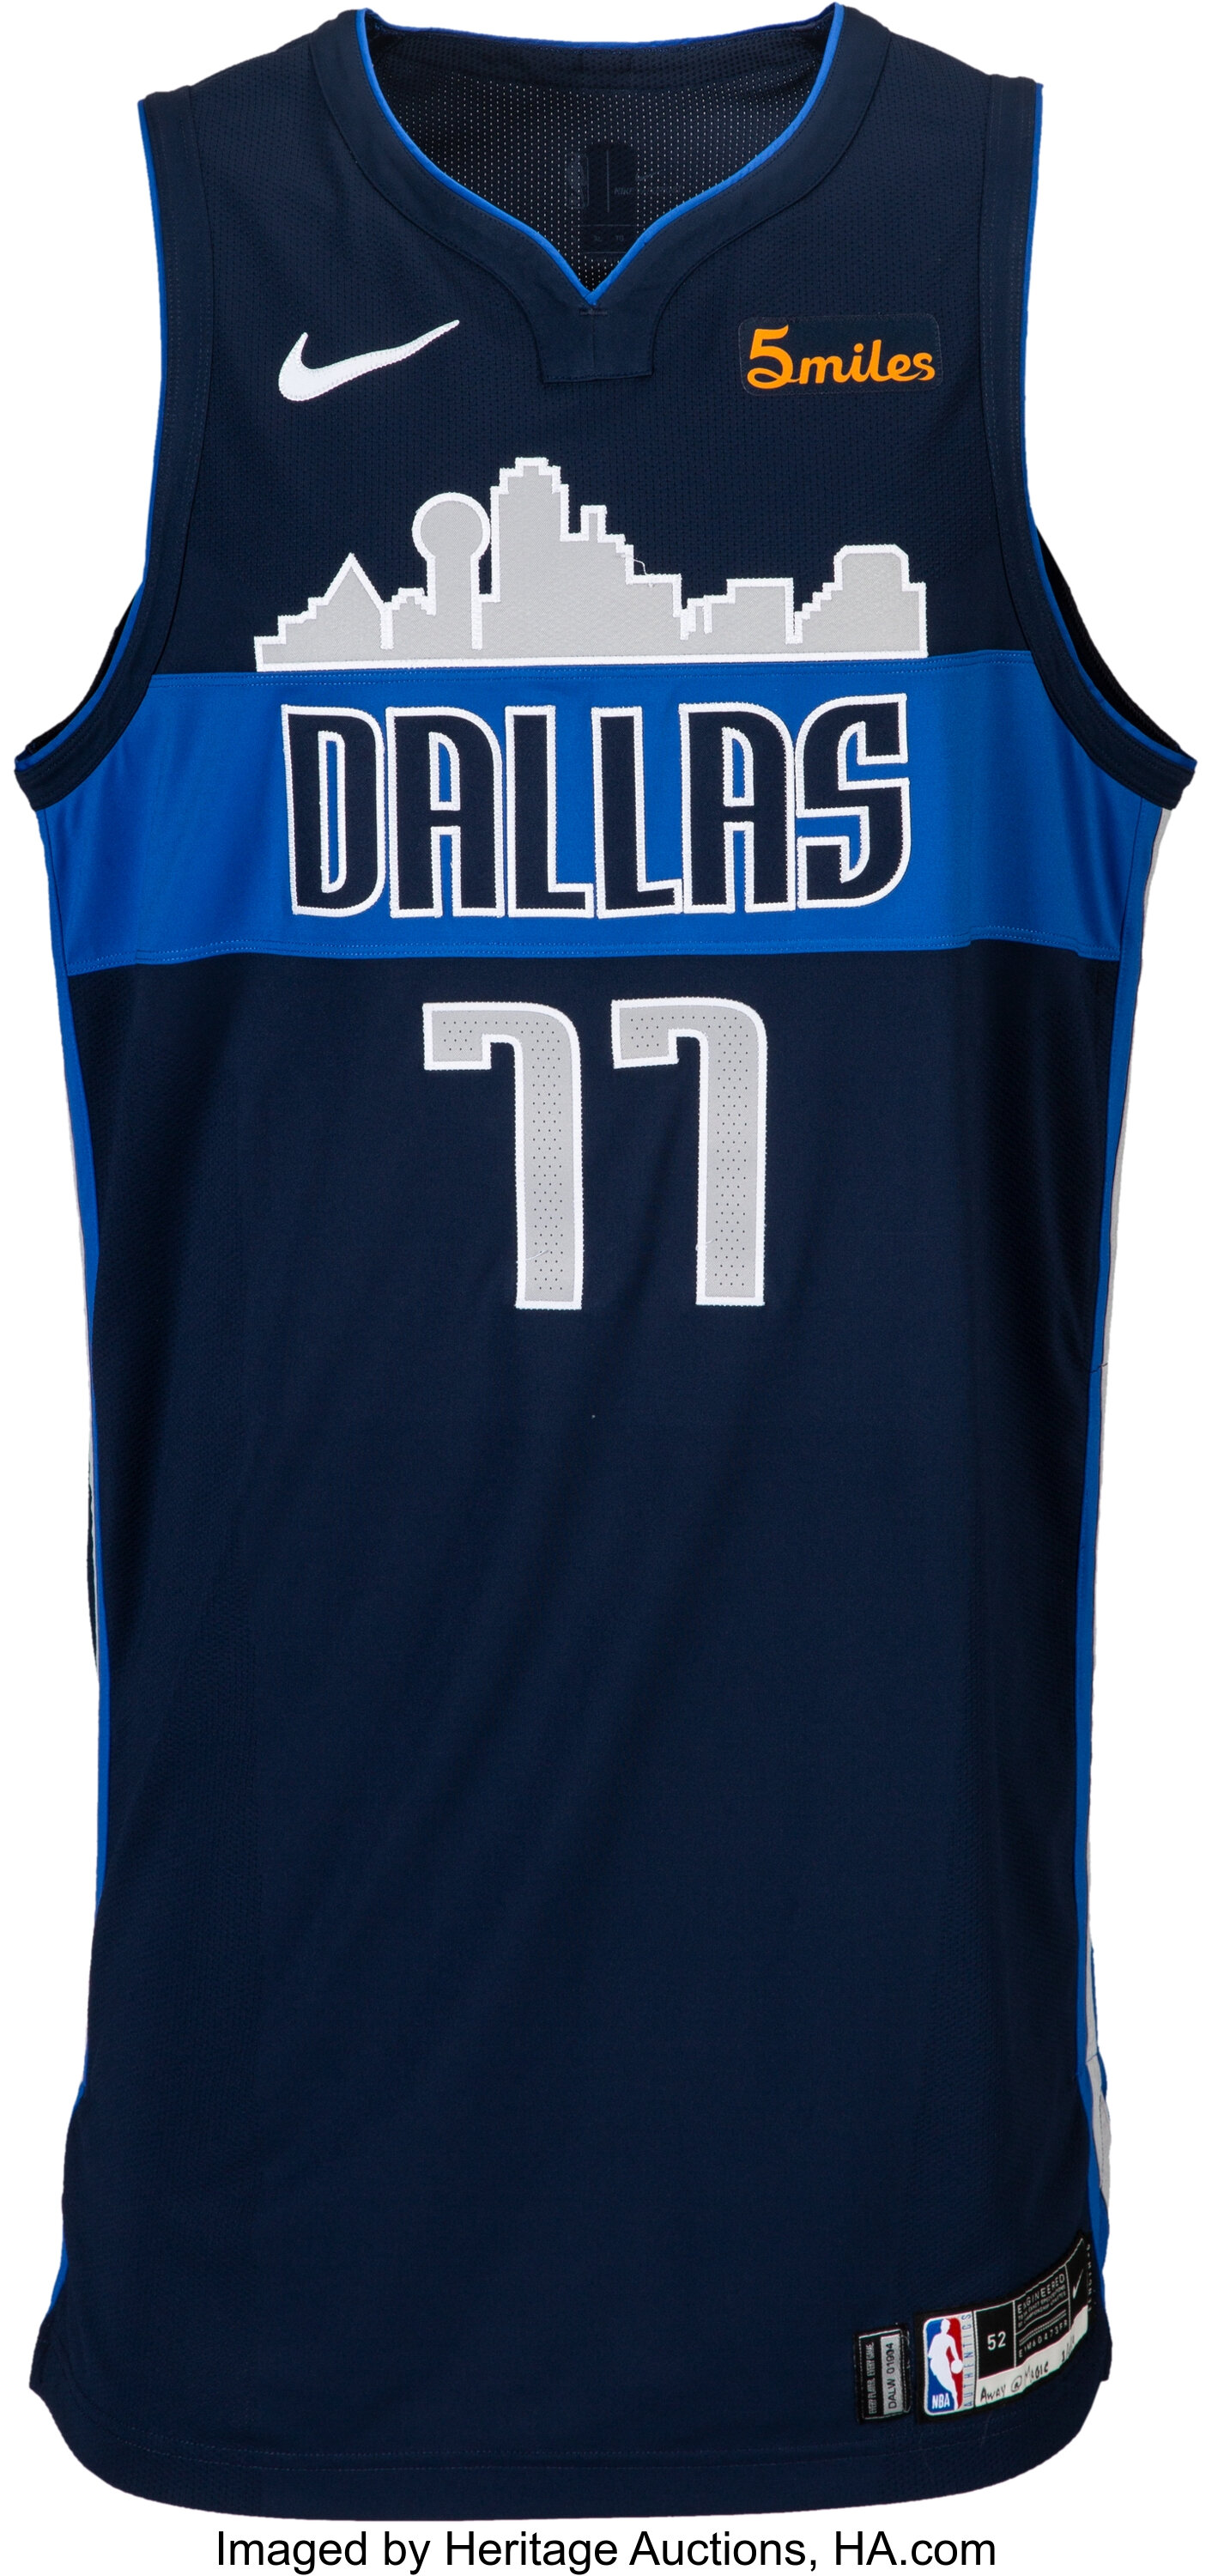 2018 19 Luka Doncic Doncic Game Worn Signed Dallas Mavericks Lot 53343 Heritage Auctions